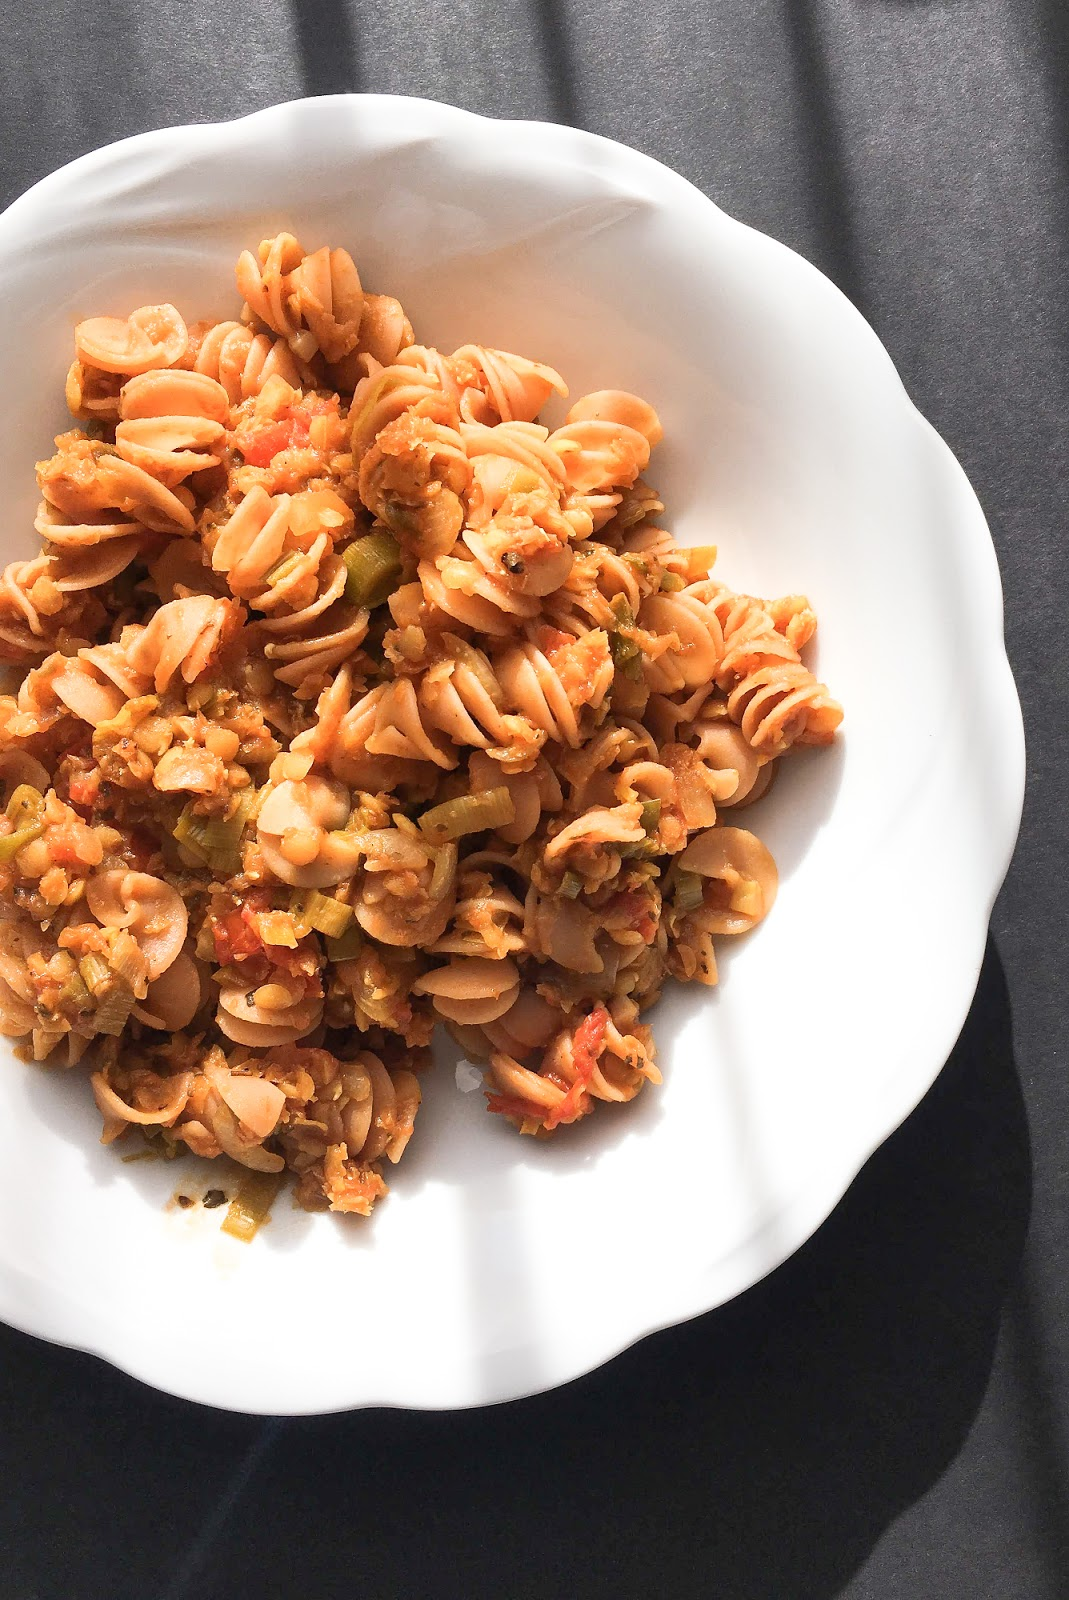 Vegan Cooking Red Lentil Pasta with Red Lentil Sauce. Gluten free